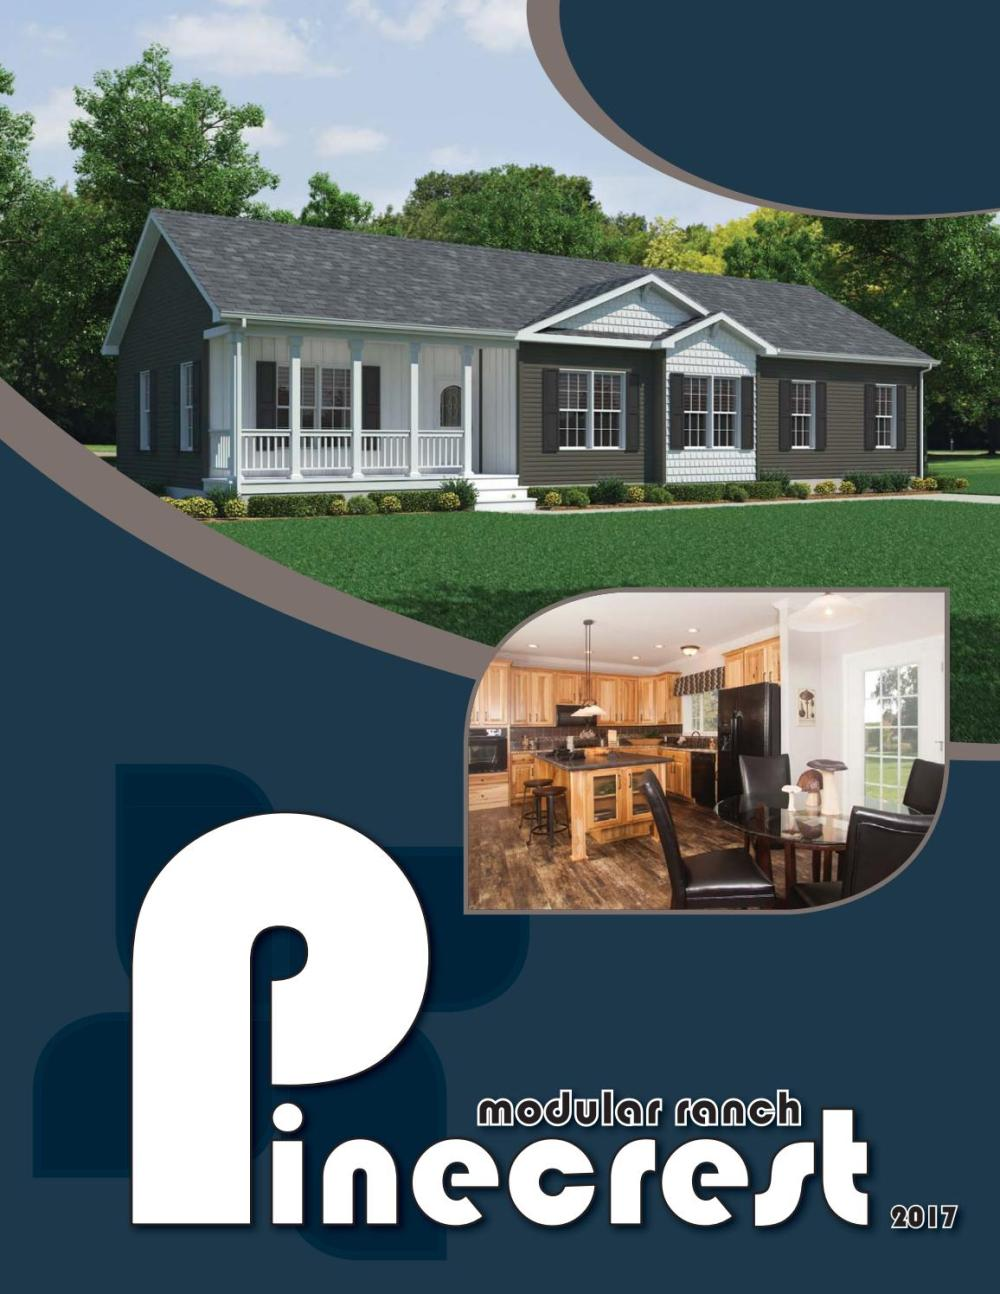 medium resolution of commodore homes of pennsylvania pinecrest modular 2017 by the commodore corporation issuu